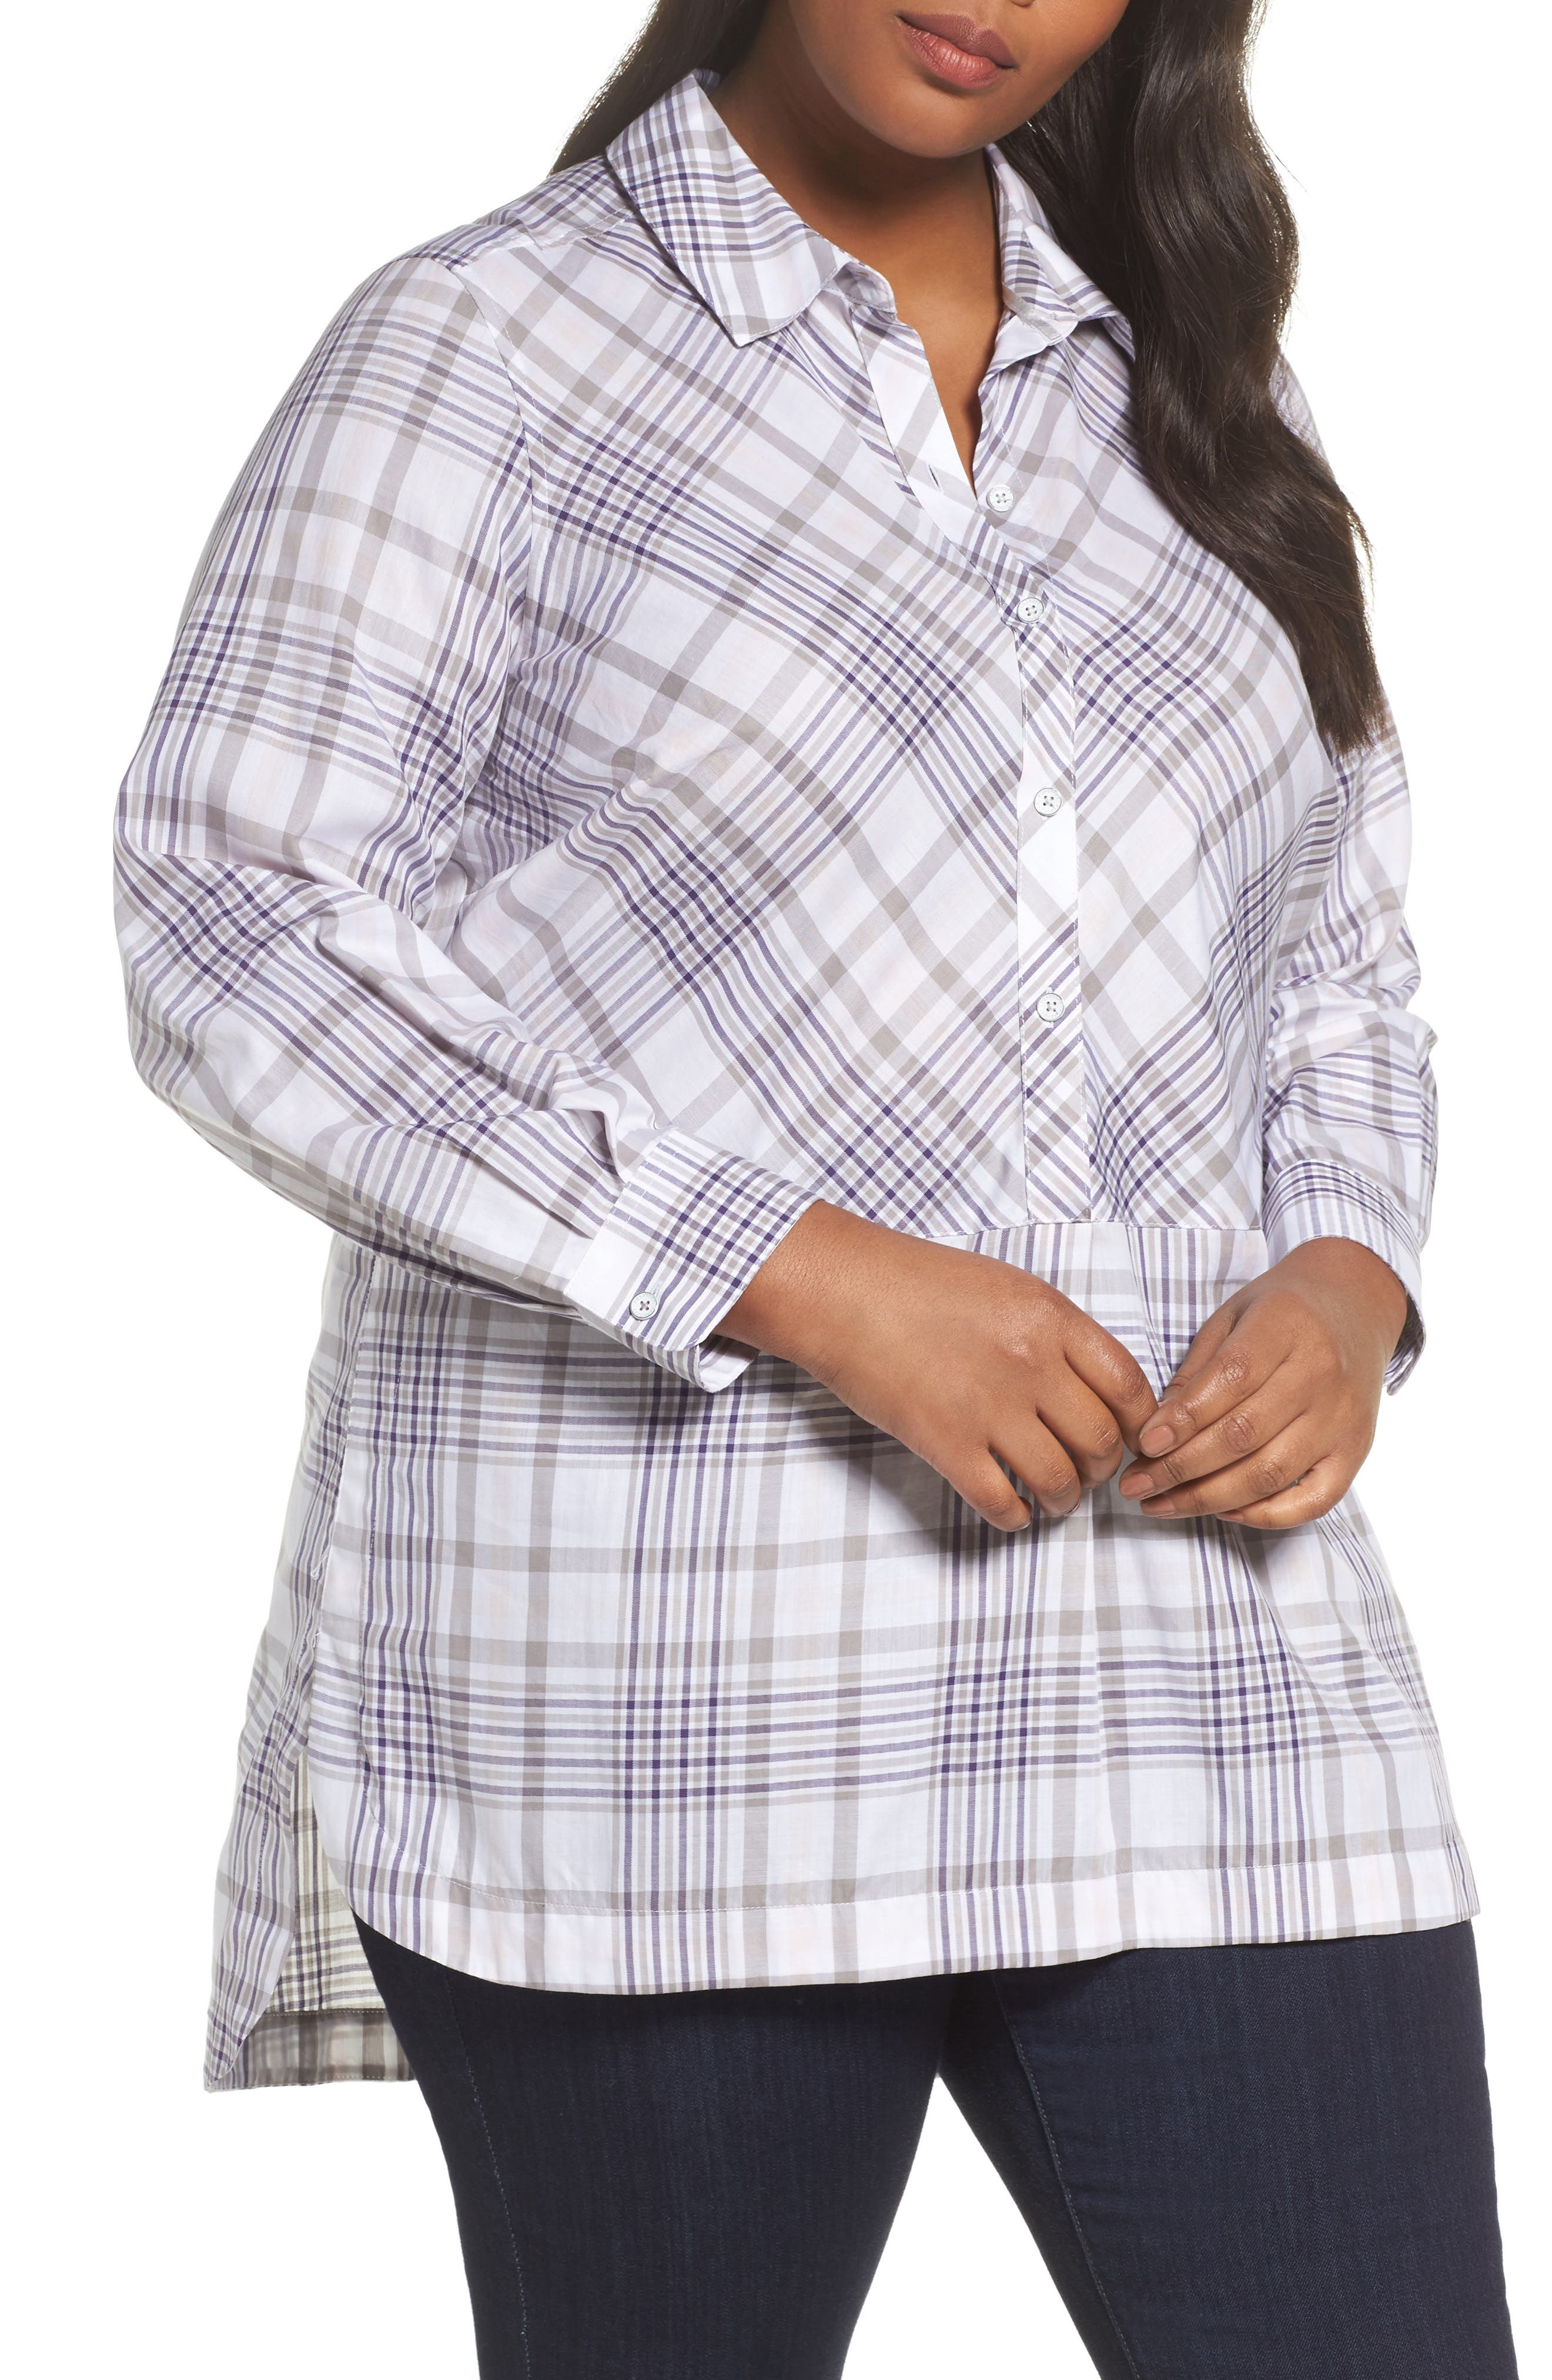 Alternate Image 1 Selected - Foxcroft Maddy Winter Plaid Shirt (Plus Size)